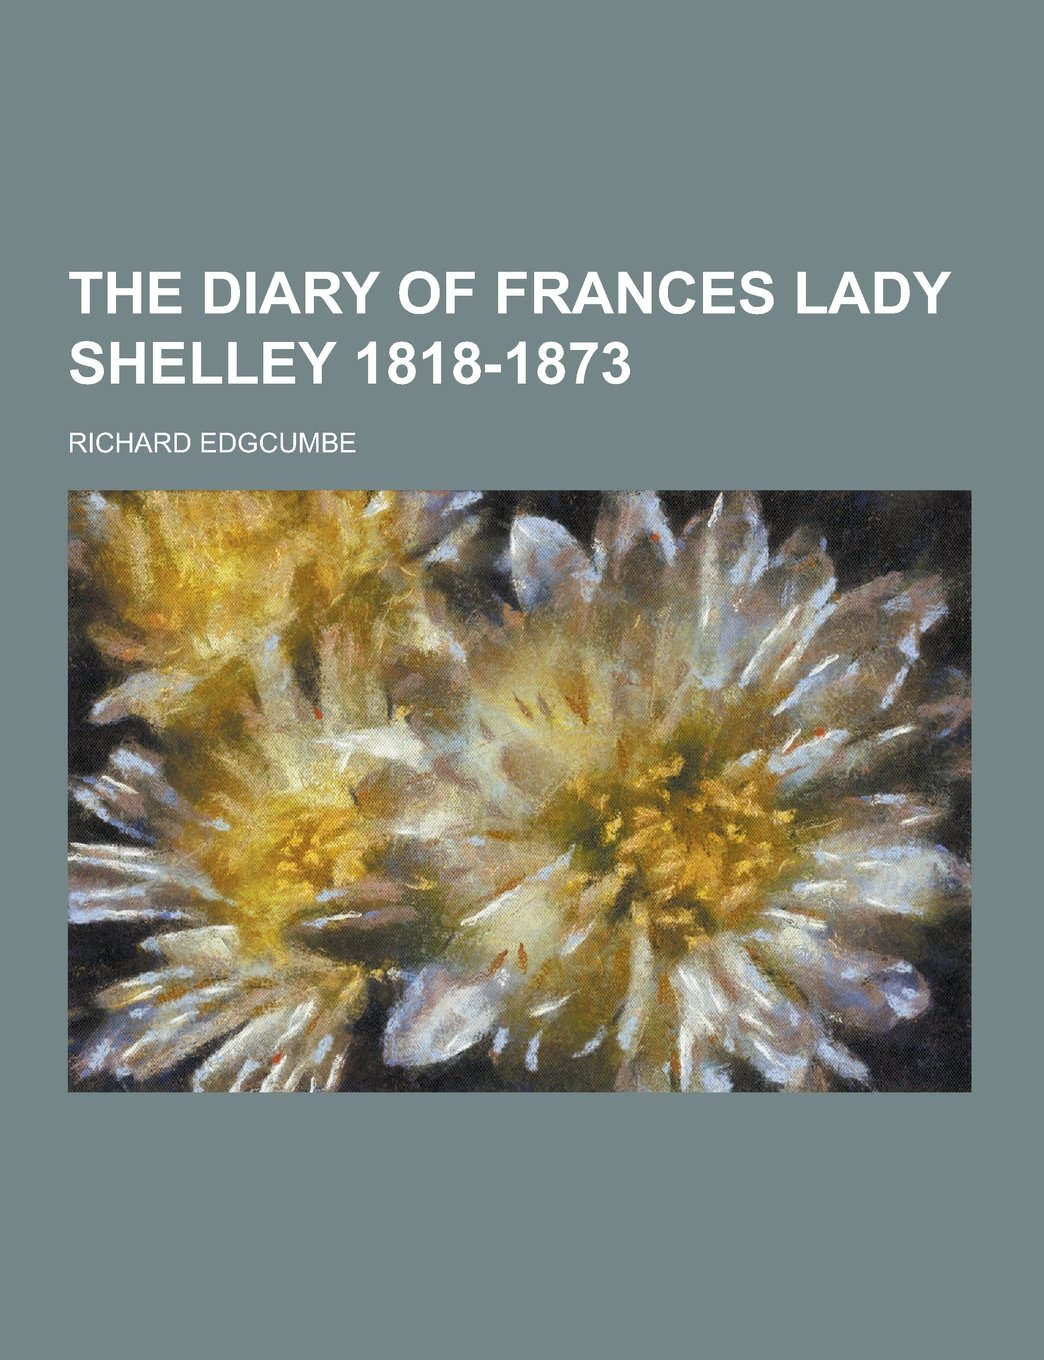 The Diary of Frances Lady Shelley 1818-1873: Richard